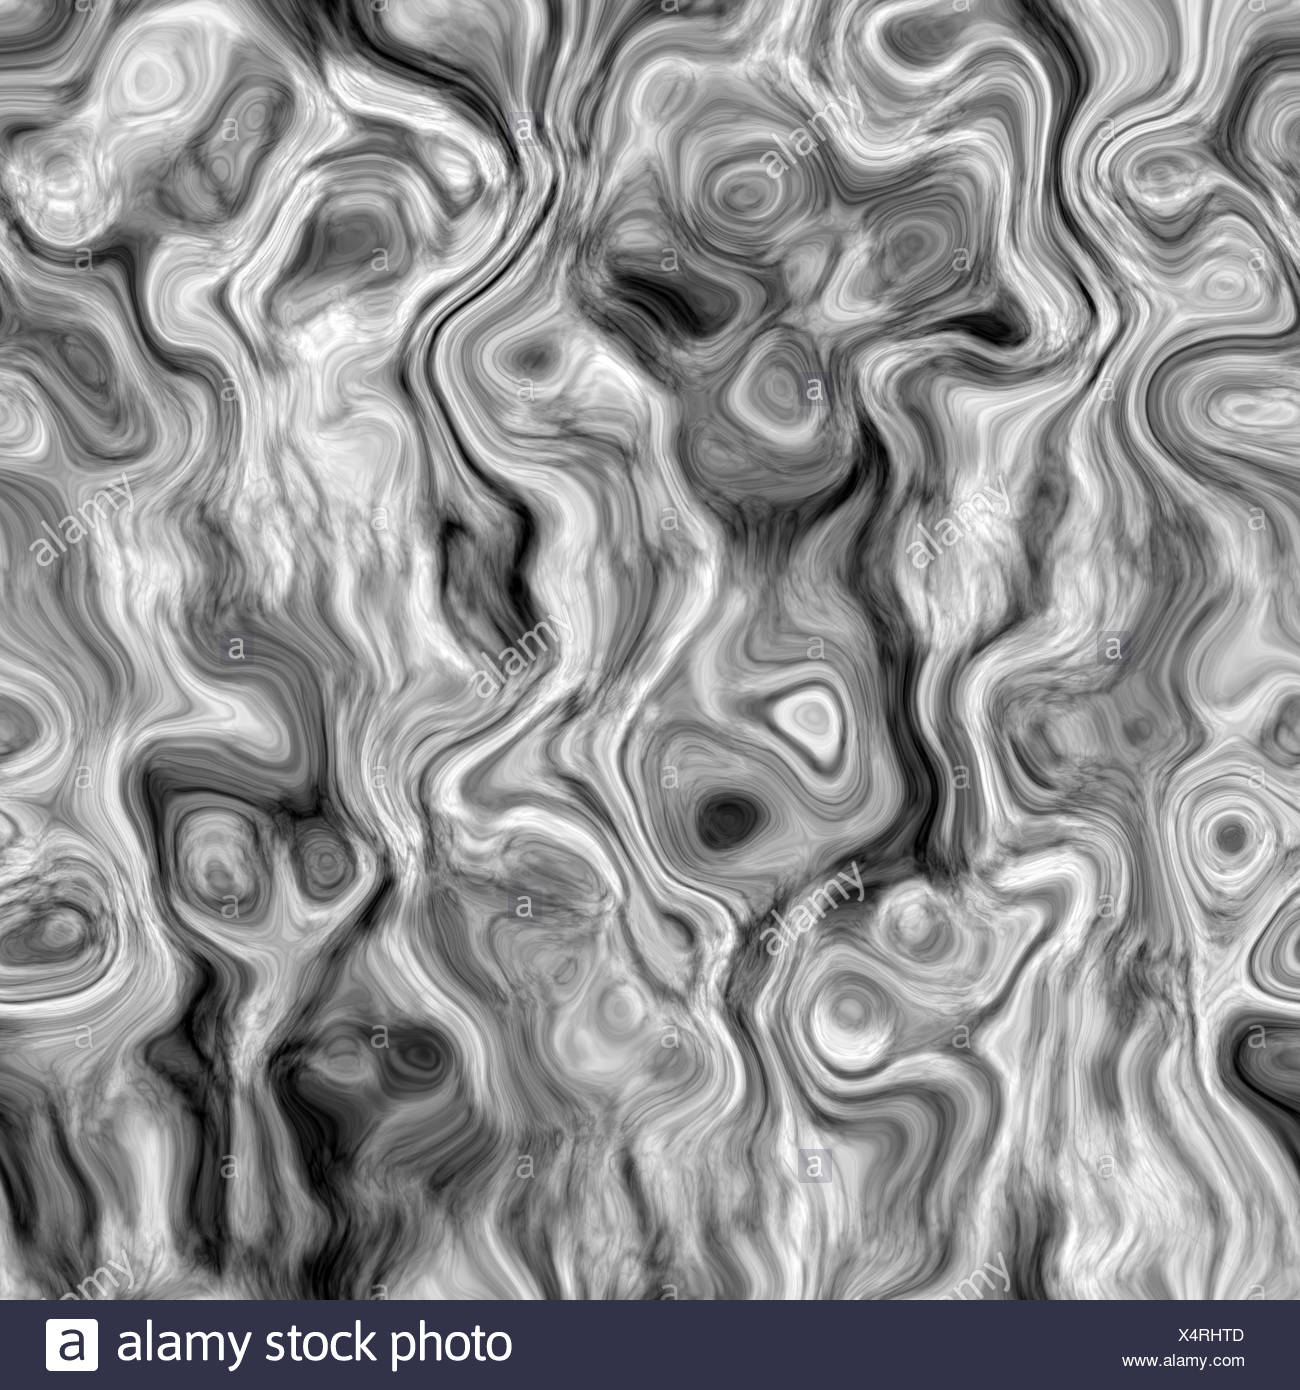 seamless texture of curling grey and white lines - Stock Image